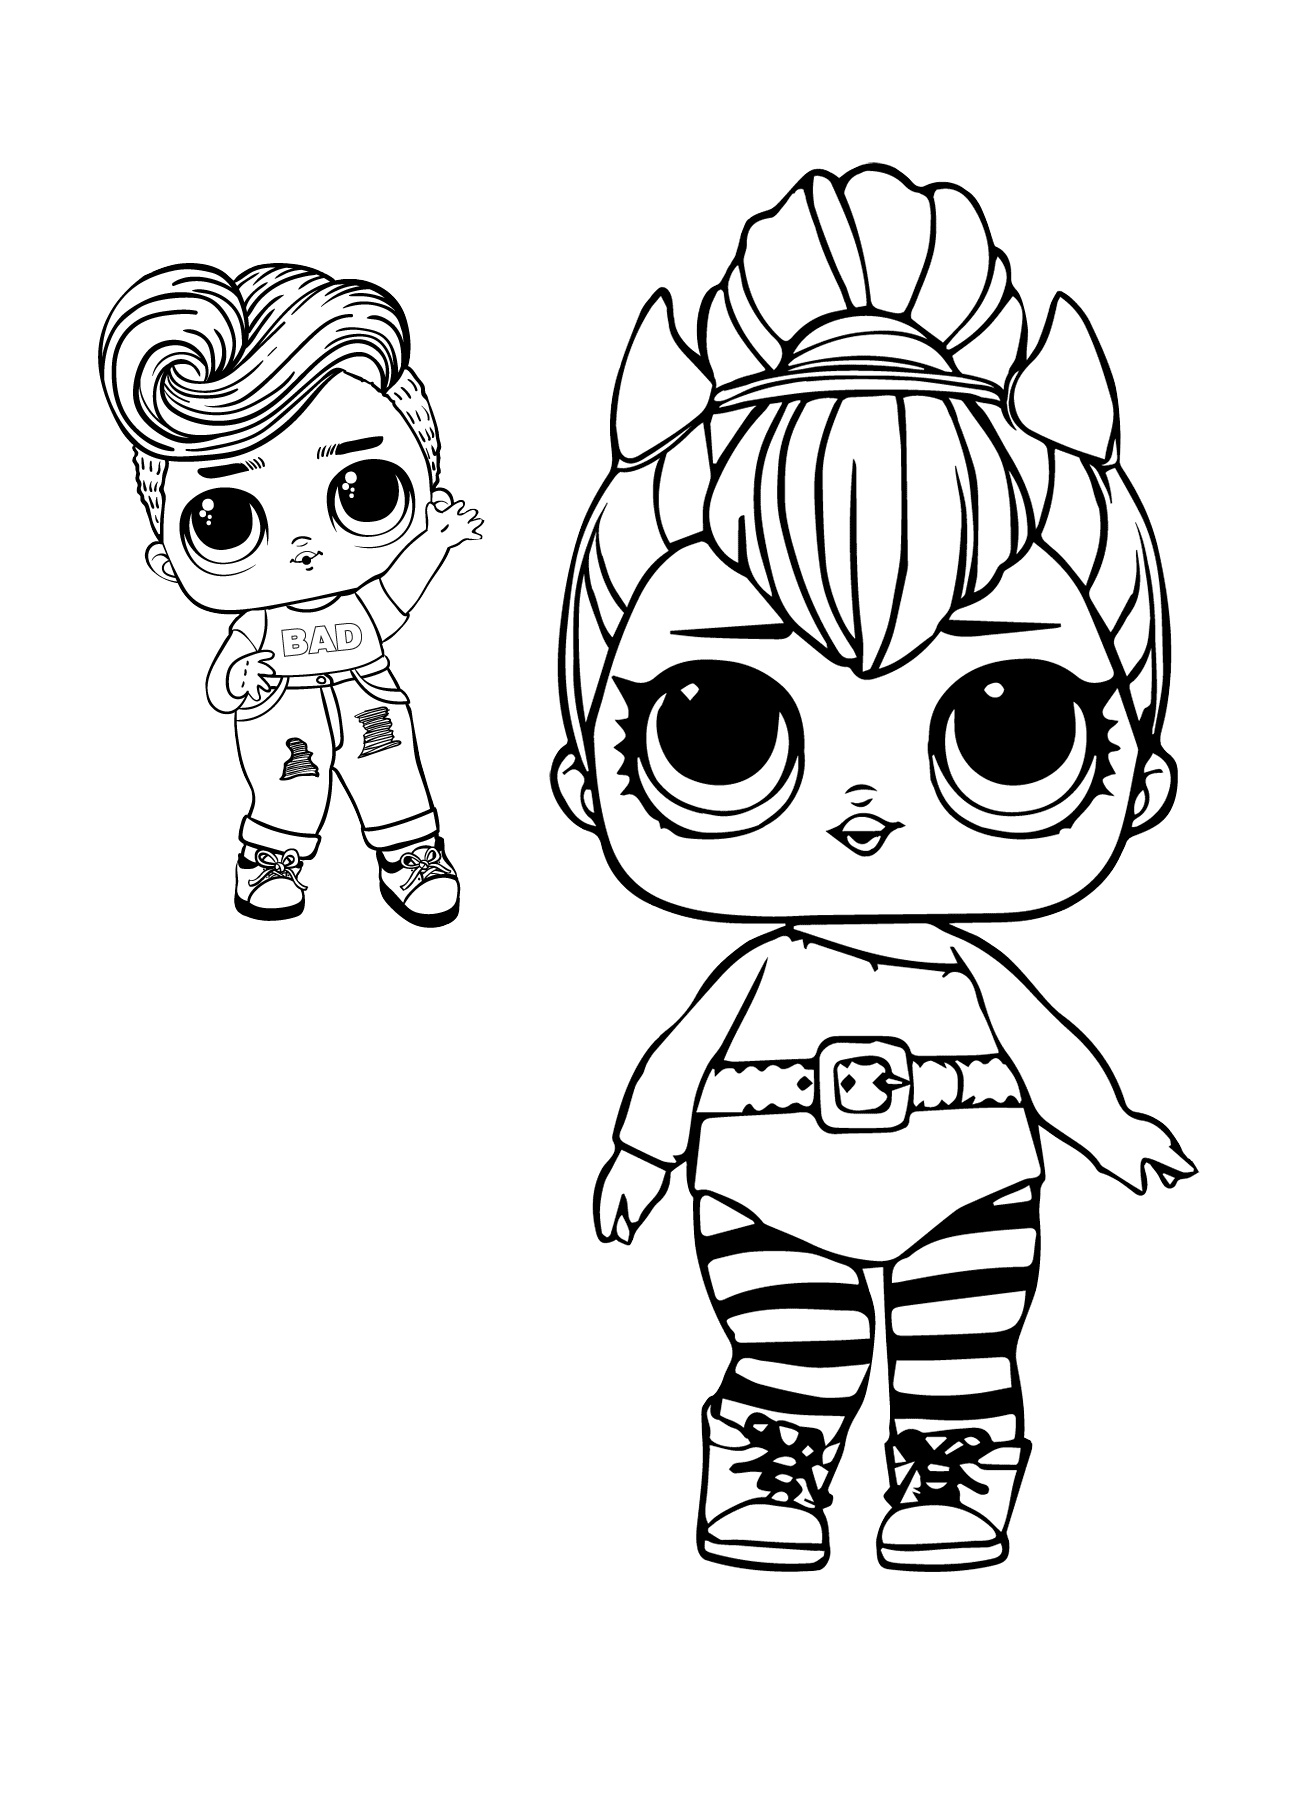 Surprise Doll Spice LOL and Friends Coloring Pages